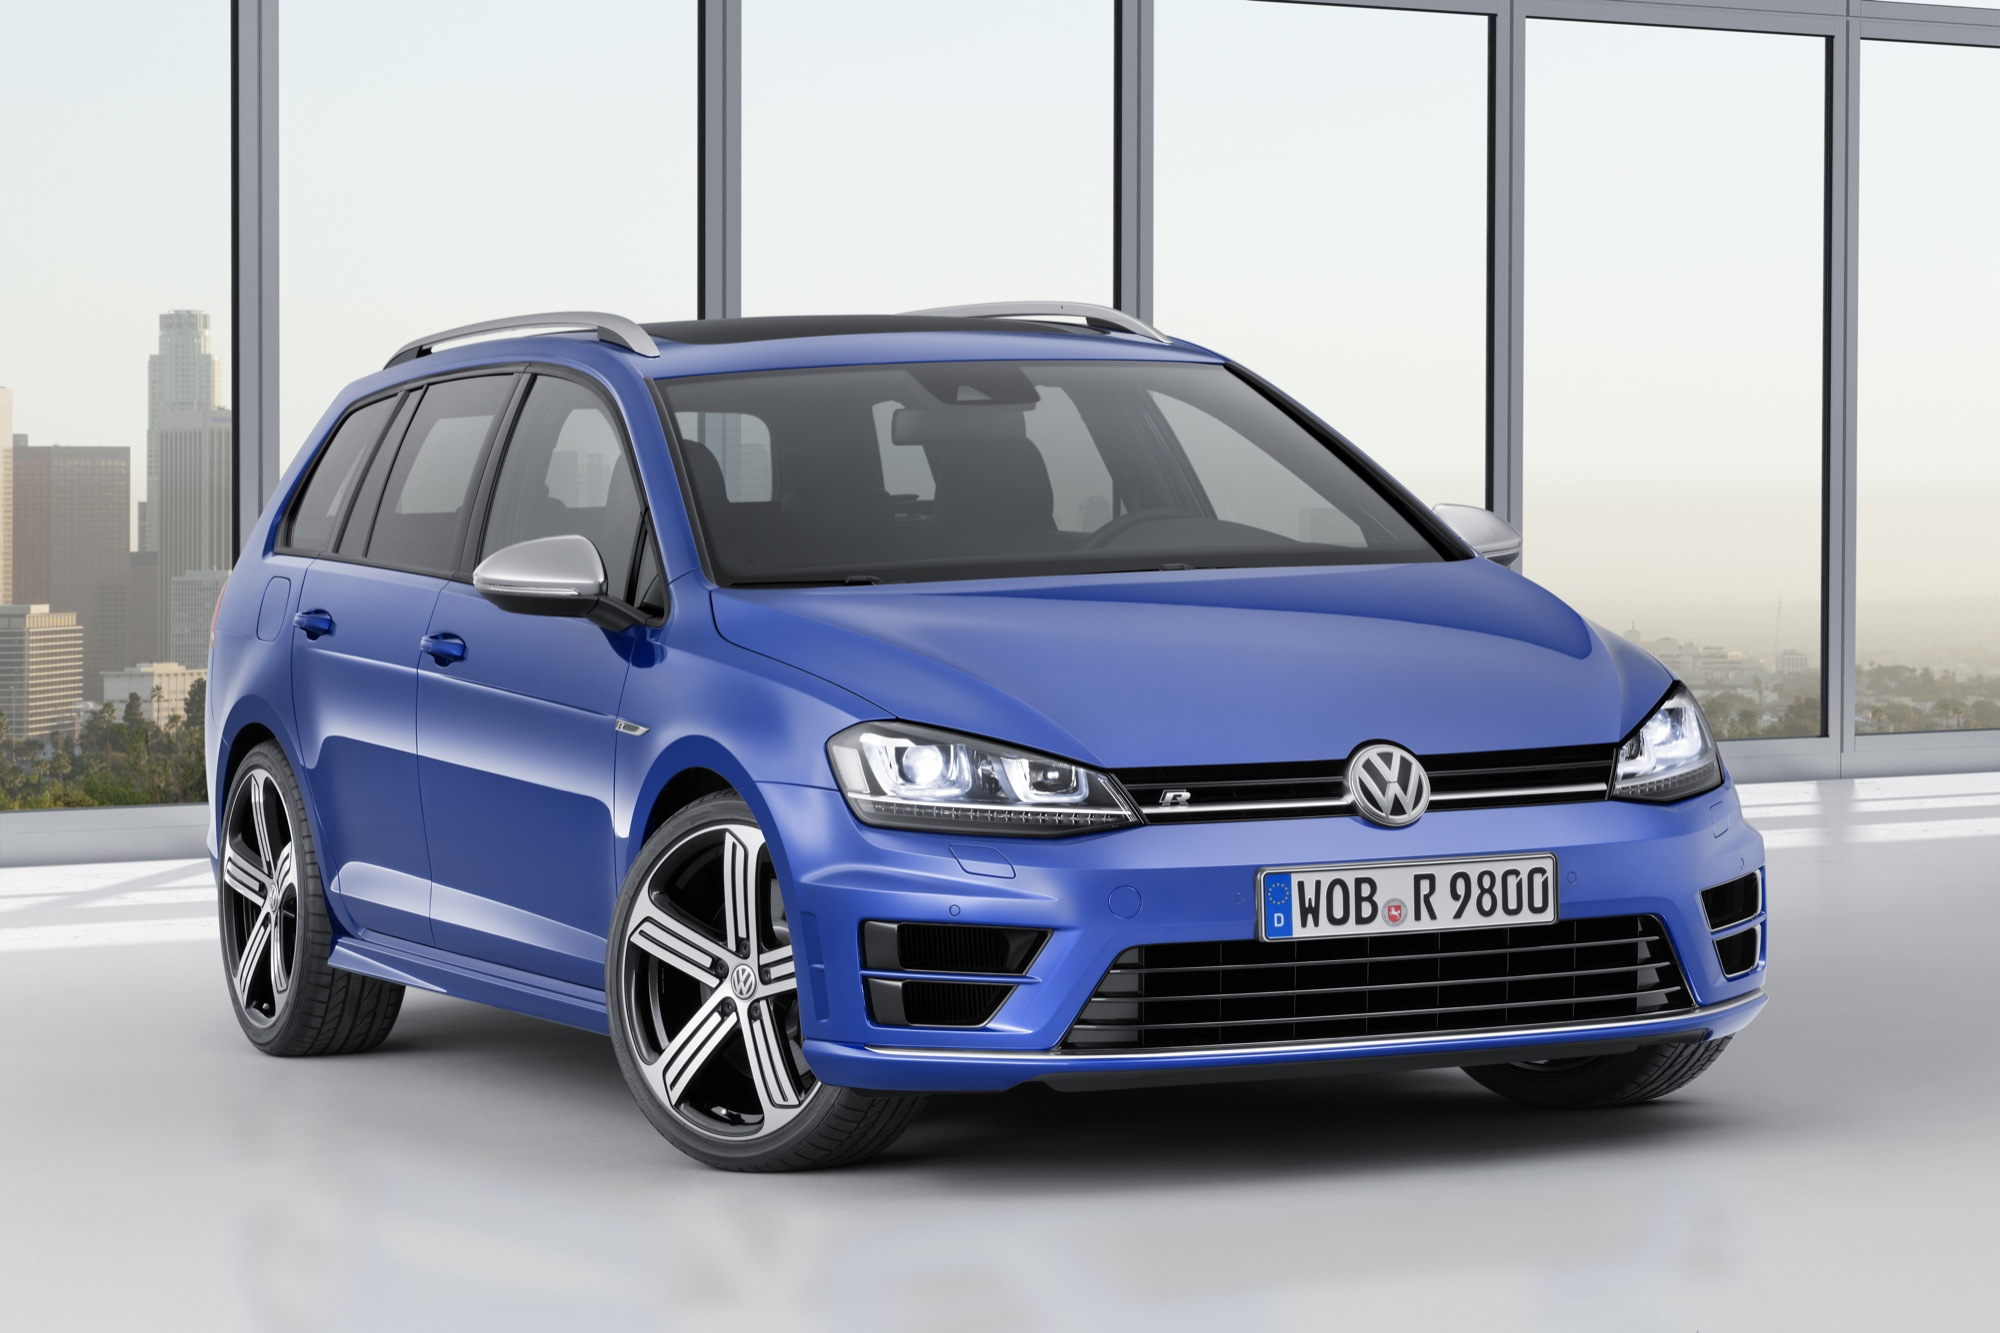 volkswagen golf r variant goes on sale across europe. Black Bedroom Furniture Sets. Home Design Ideas